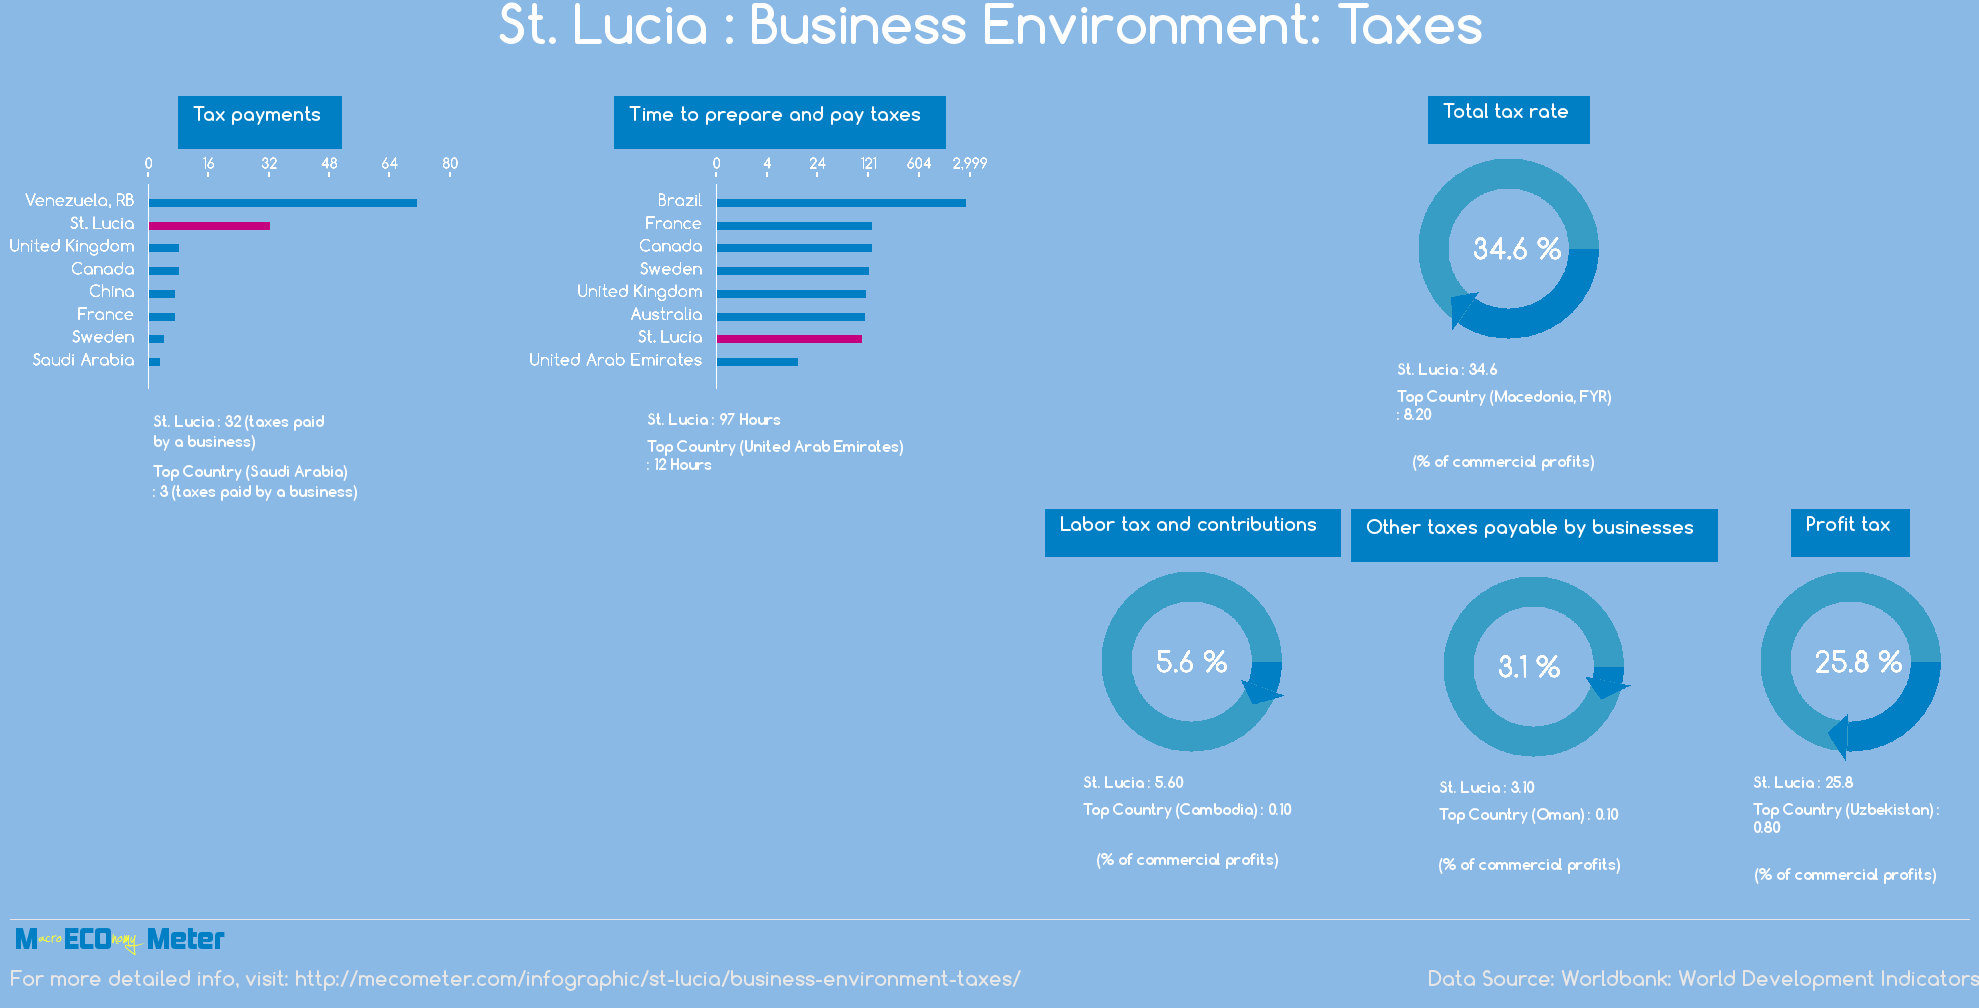 St. Lucia : Business Environment: Taxes